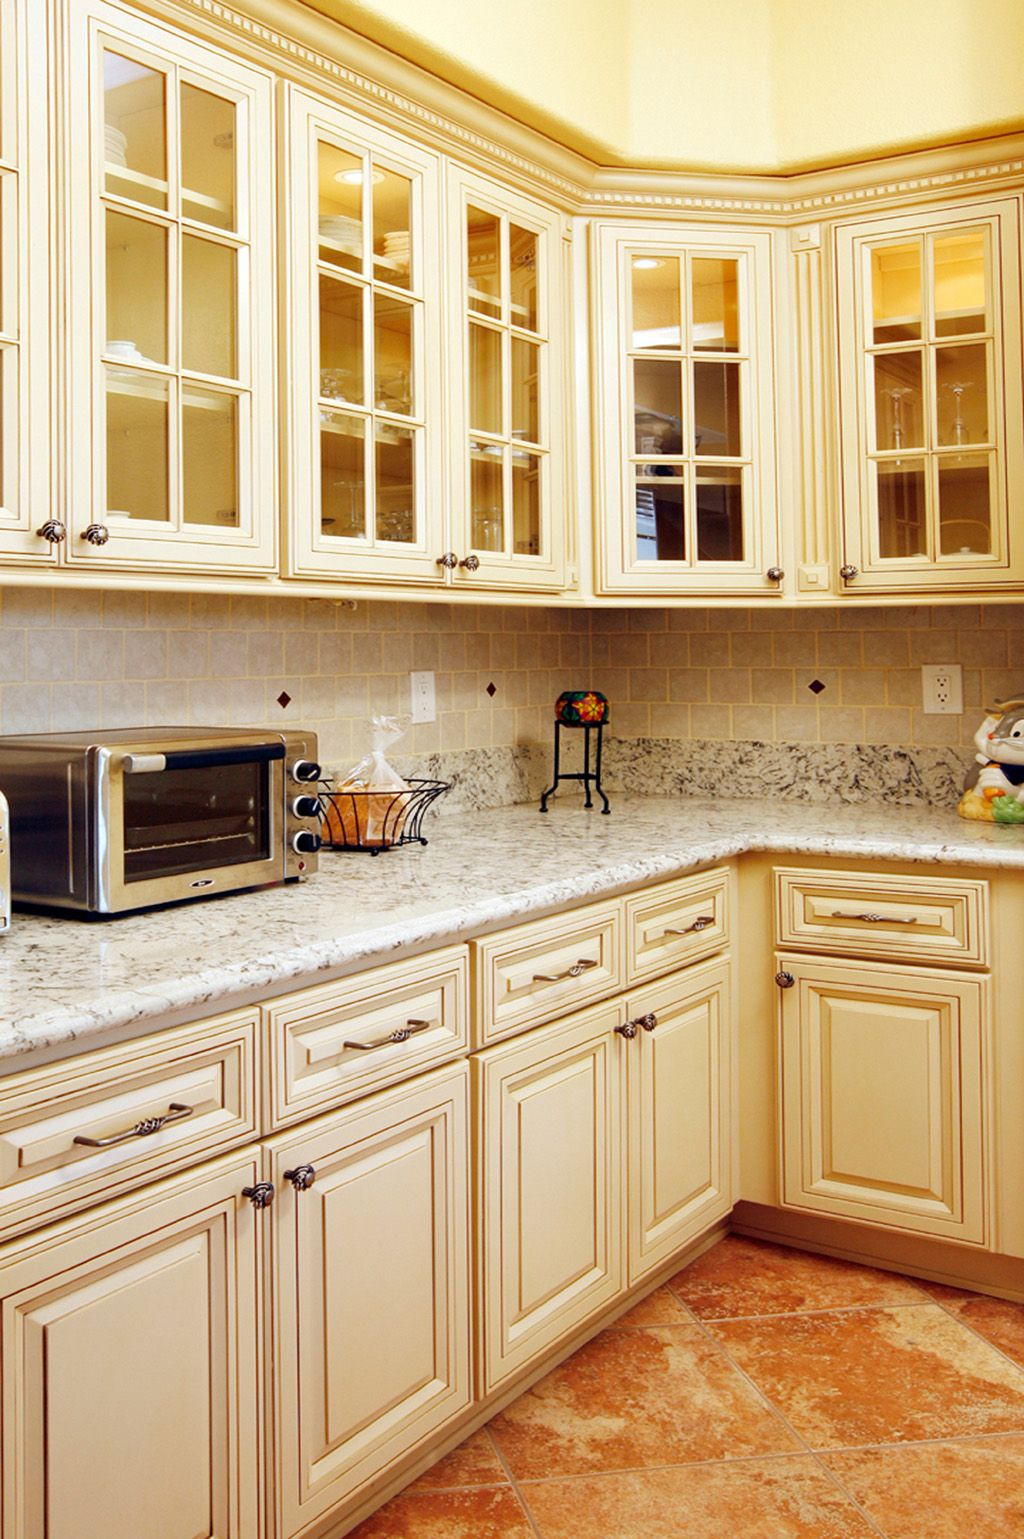 Antique White Kitchen Ideas north american maple antique white glaze kitchen cabinets with